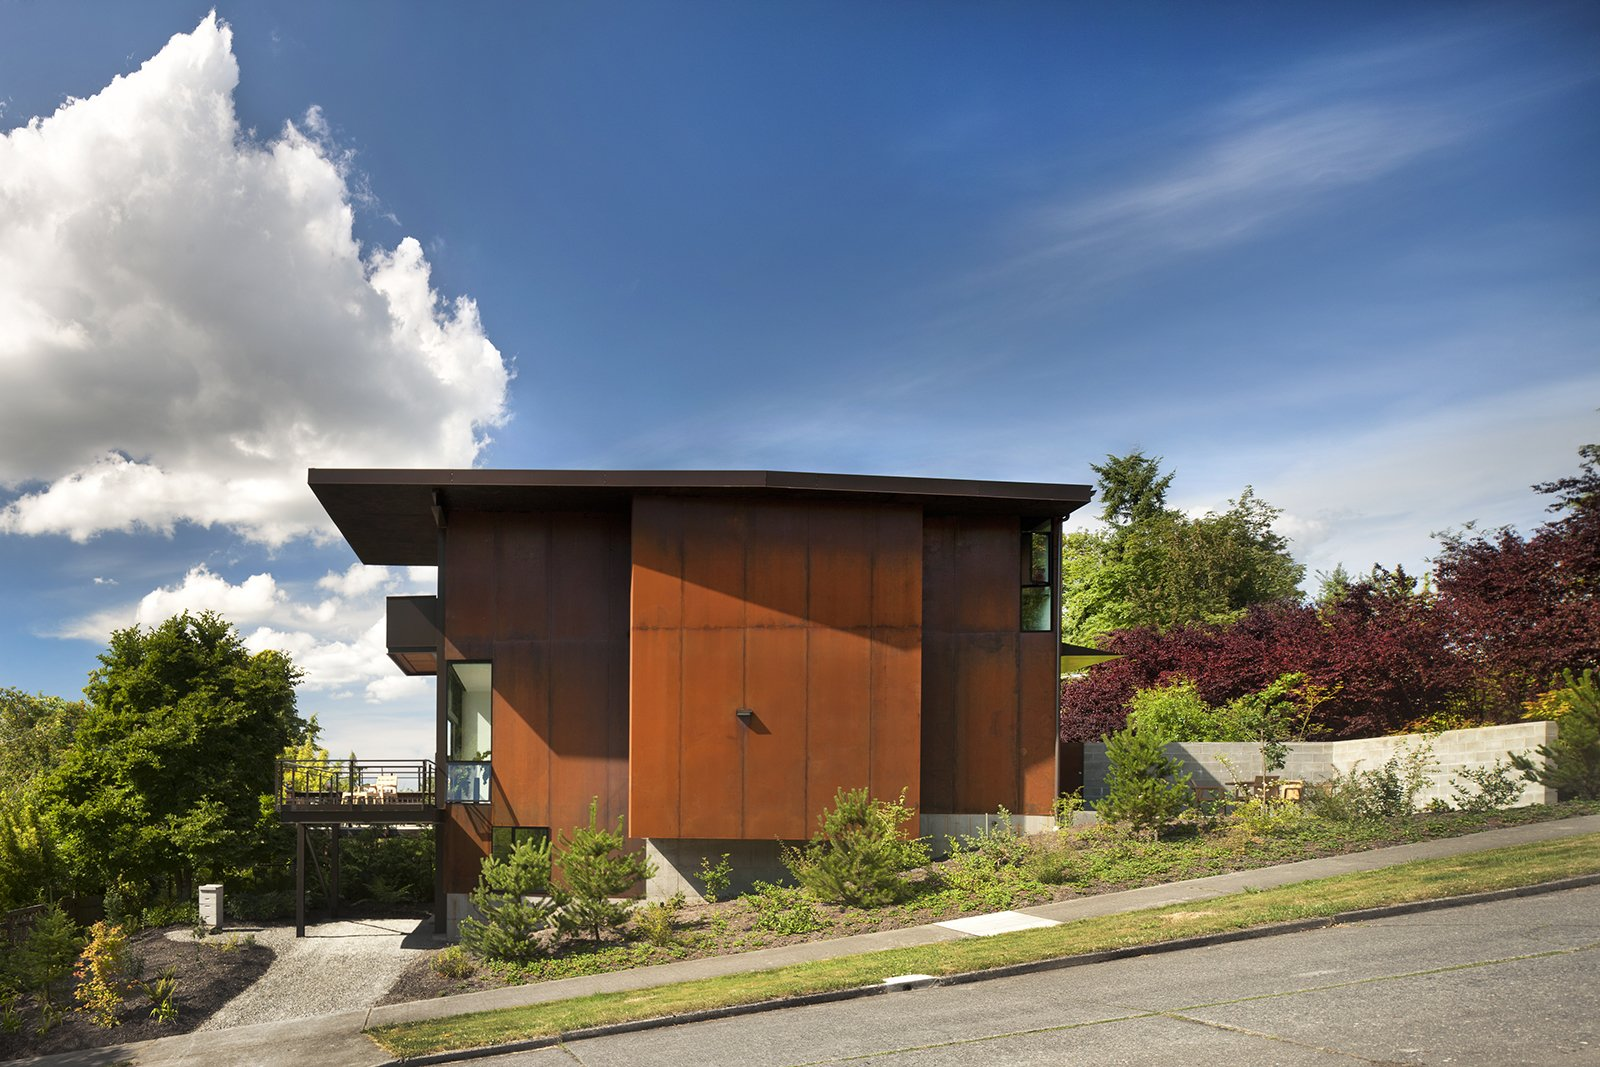 The Hammer House in Seattle is clad in weathered steel panels, which provide privacy from the busy street. Natural light enters from a glass-walled bay directly behind the opaque wall. Photo by: Nic Lehoux Tagged: Exterior, Metal Siding Material, and House.  5 Ways to Use Steel in Modern Homes by Allie Weiss from Olson Kundig Houses